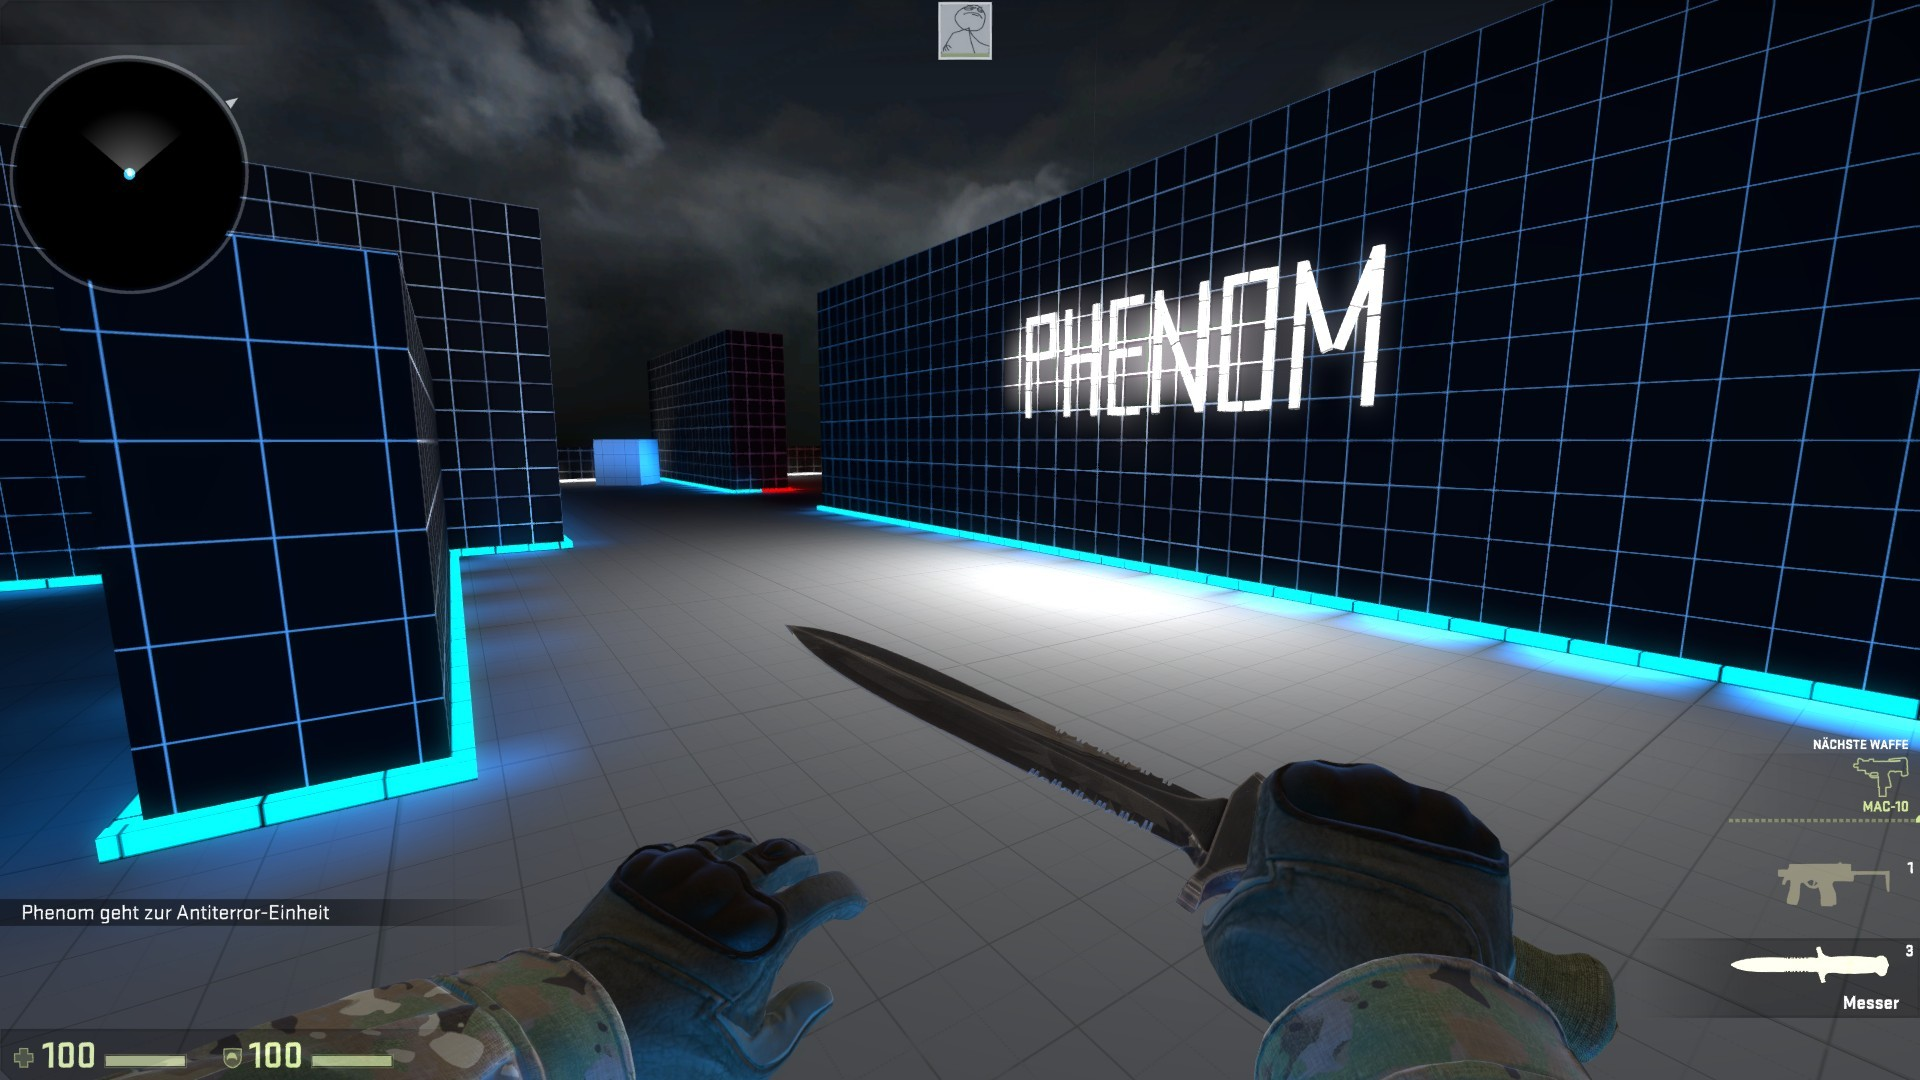 Counter-Strike: Global Offensive Map - aim_neonlight screenshot 2